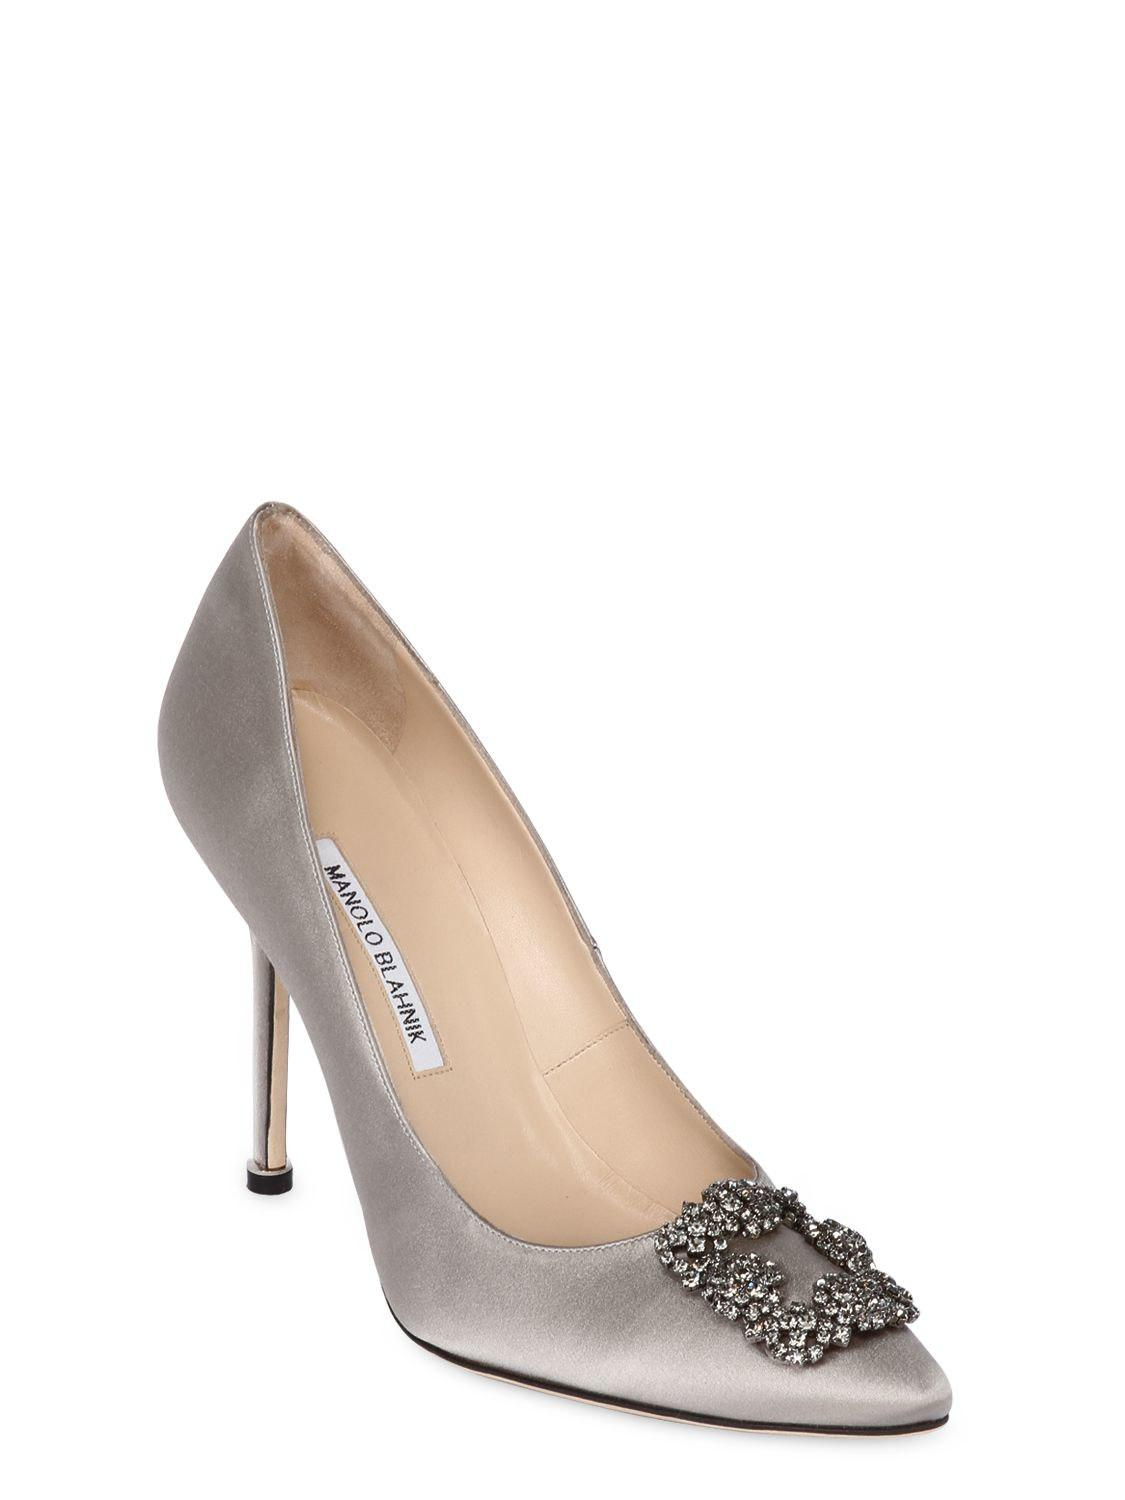 1fe887e76c55 Lyst - Manolo Blahnik 105mm Hangisi Swarovski Silk Satin Pumps in Gray